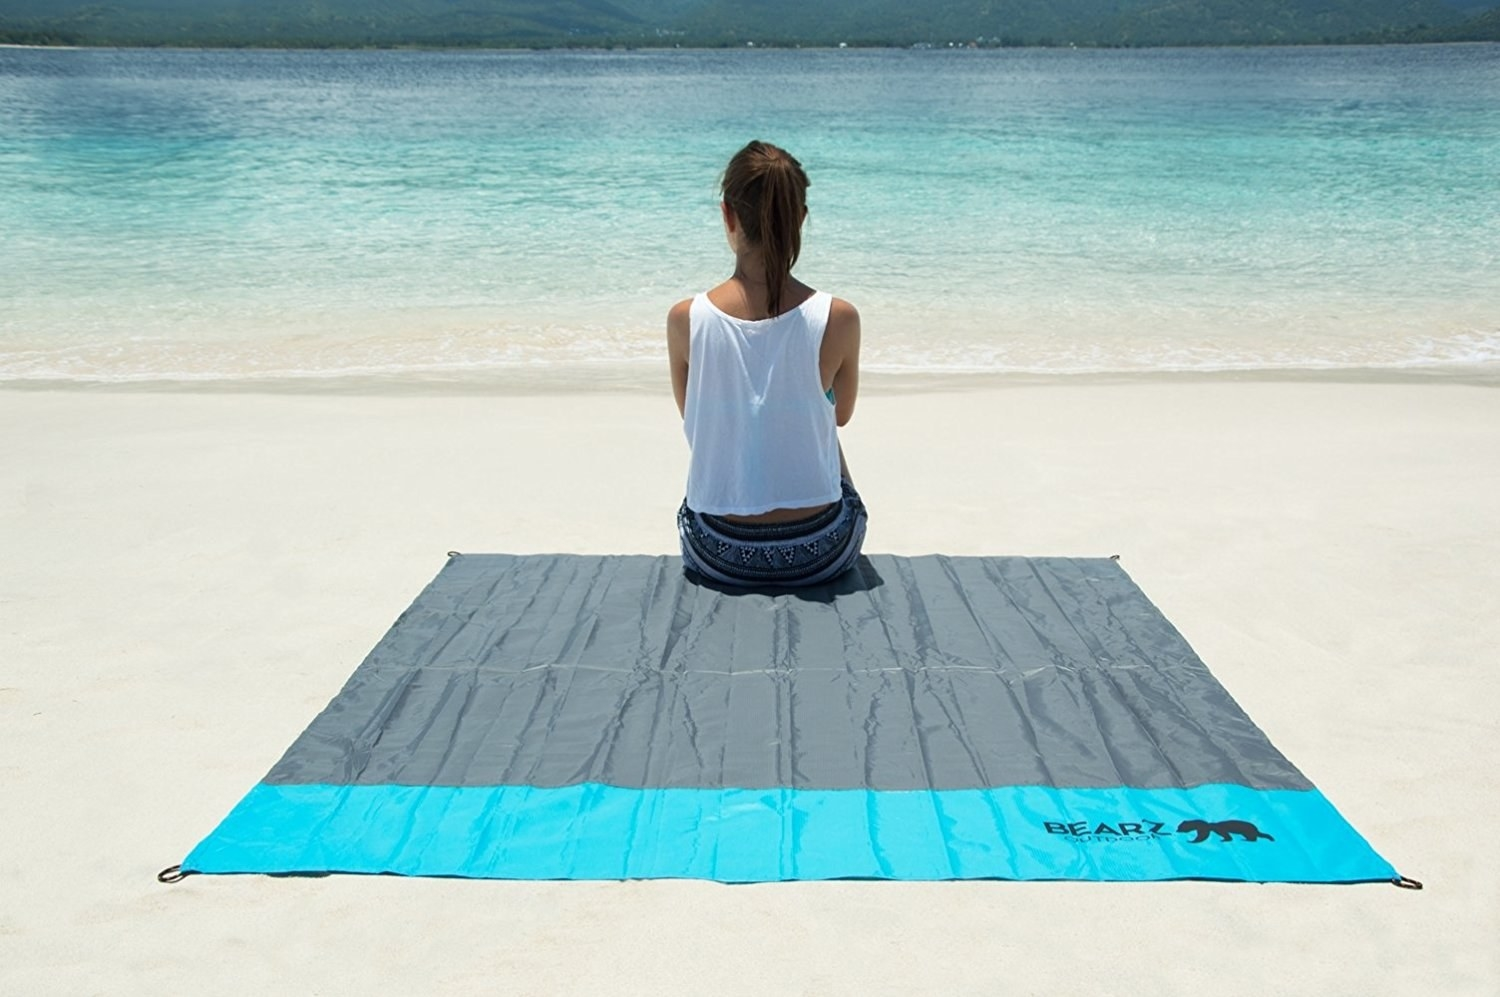 person sitting on blanket